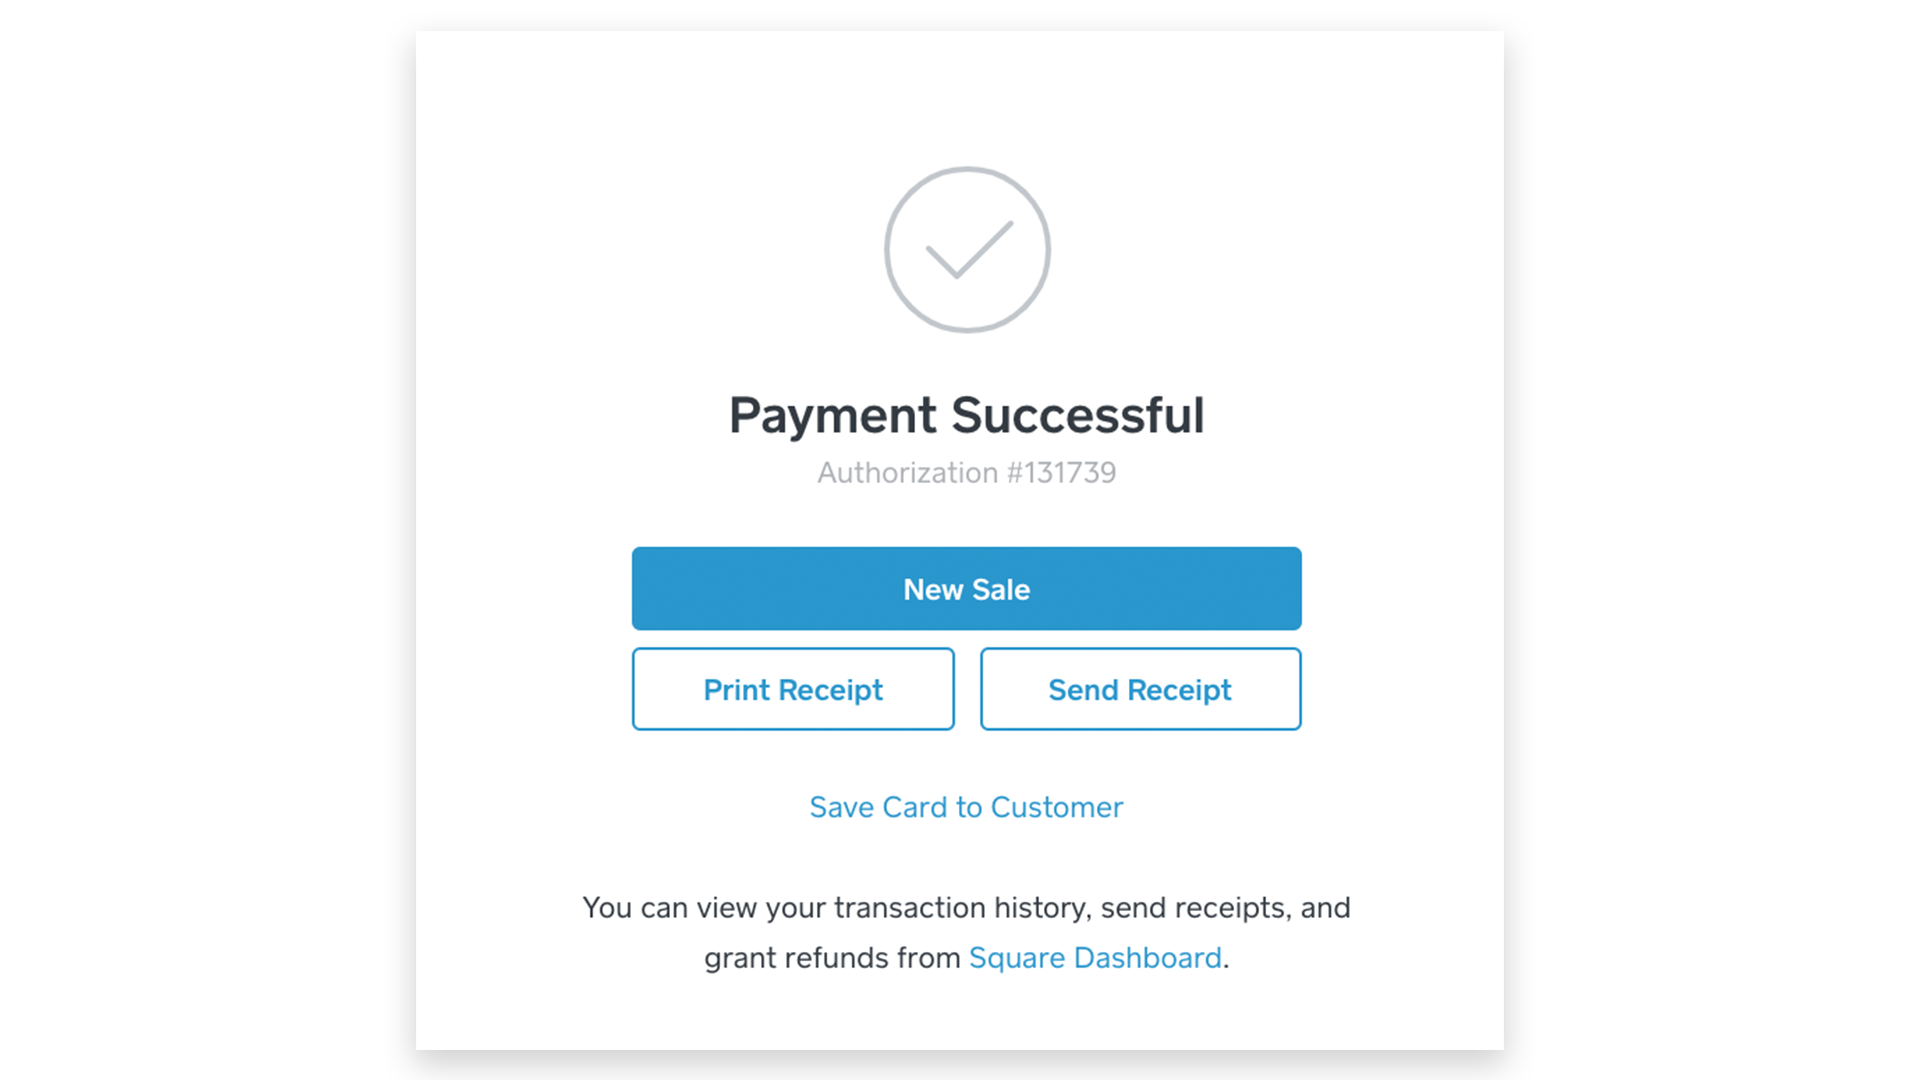 Payment Successful in Virtual Terminal